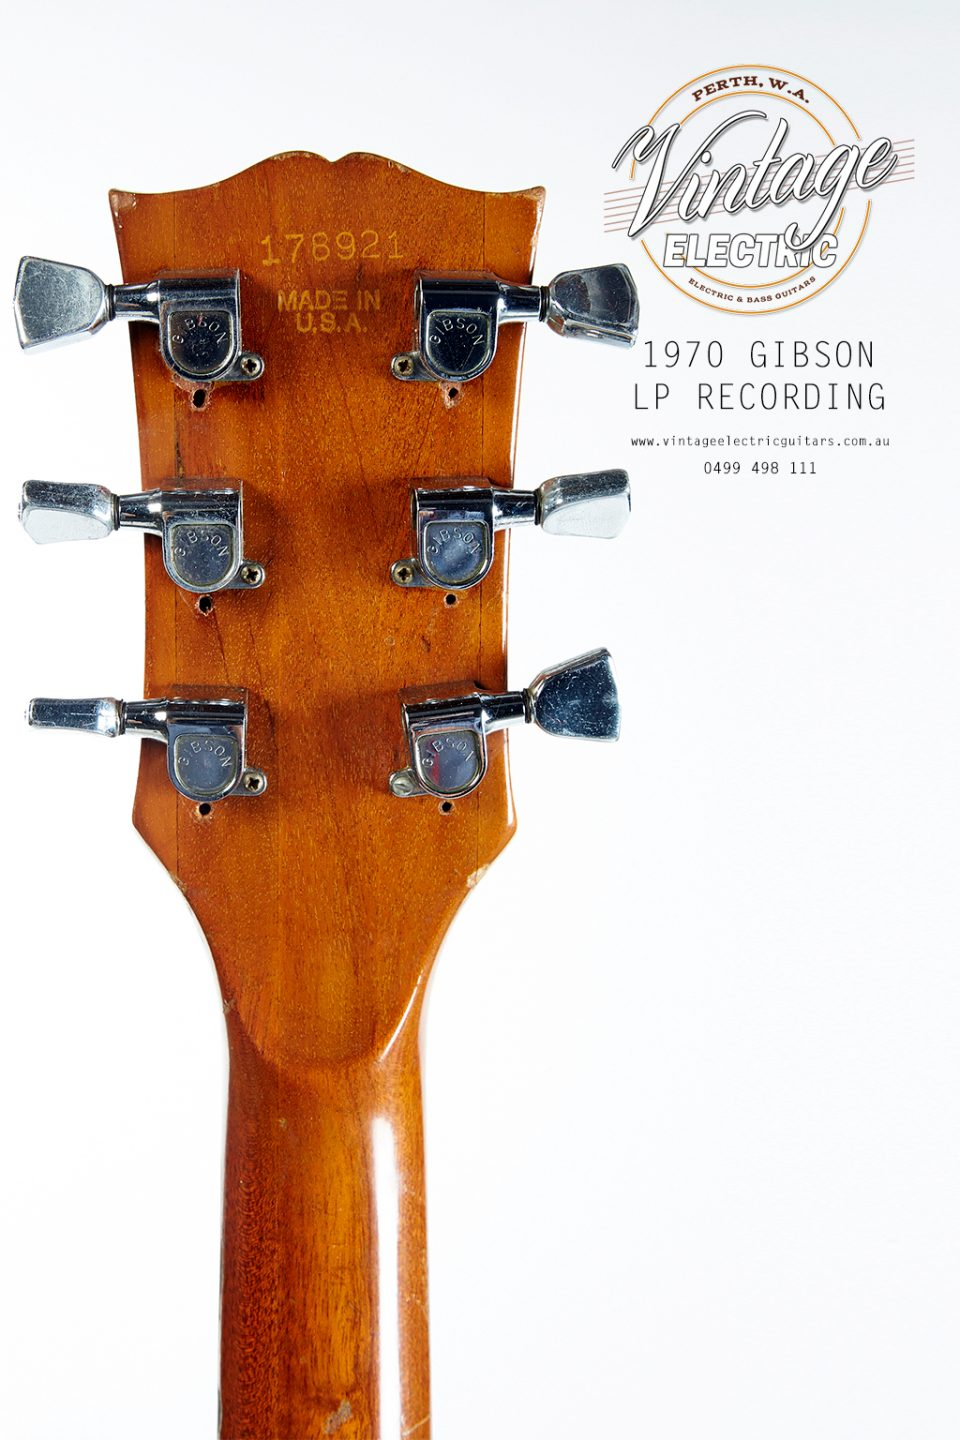 1970 Gibson Les Paul Recording Back of Headstock